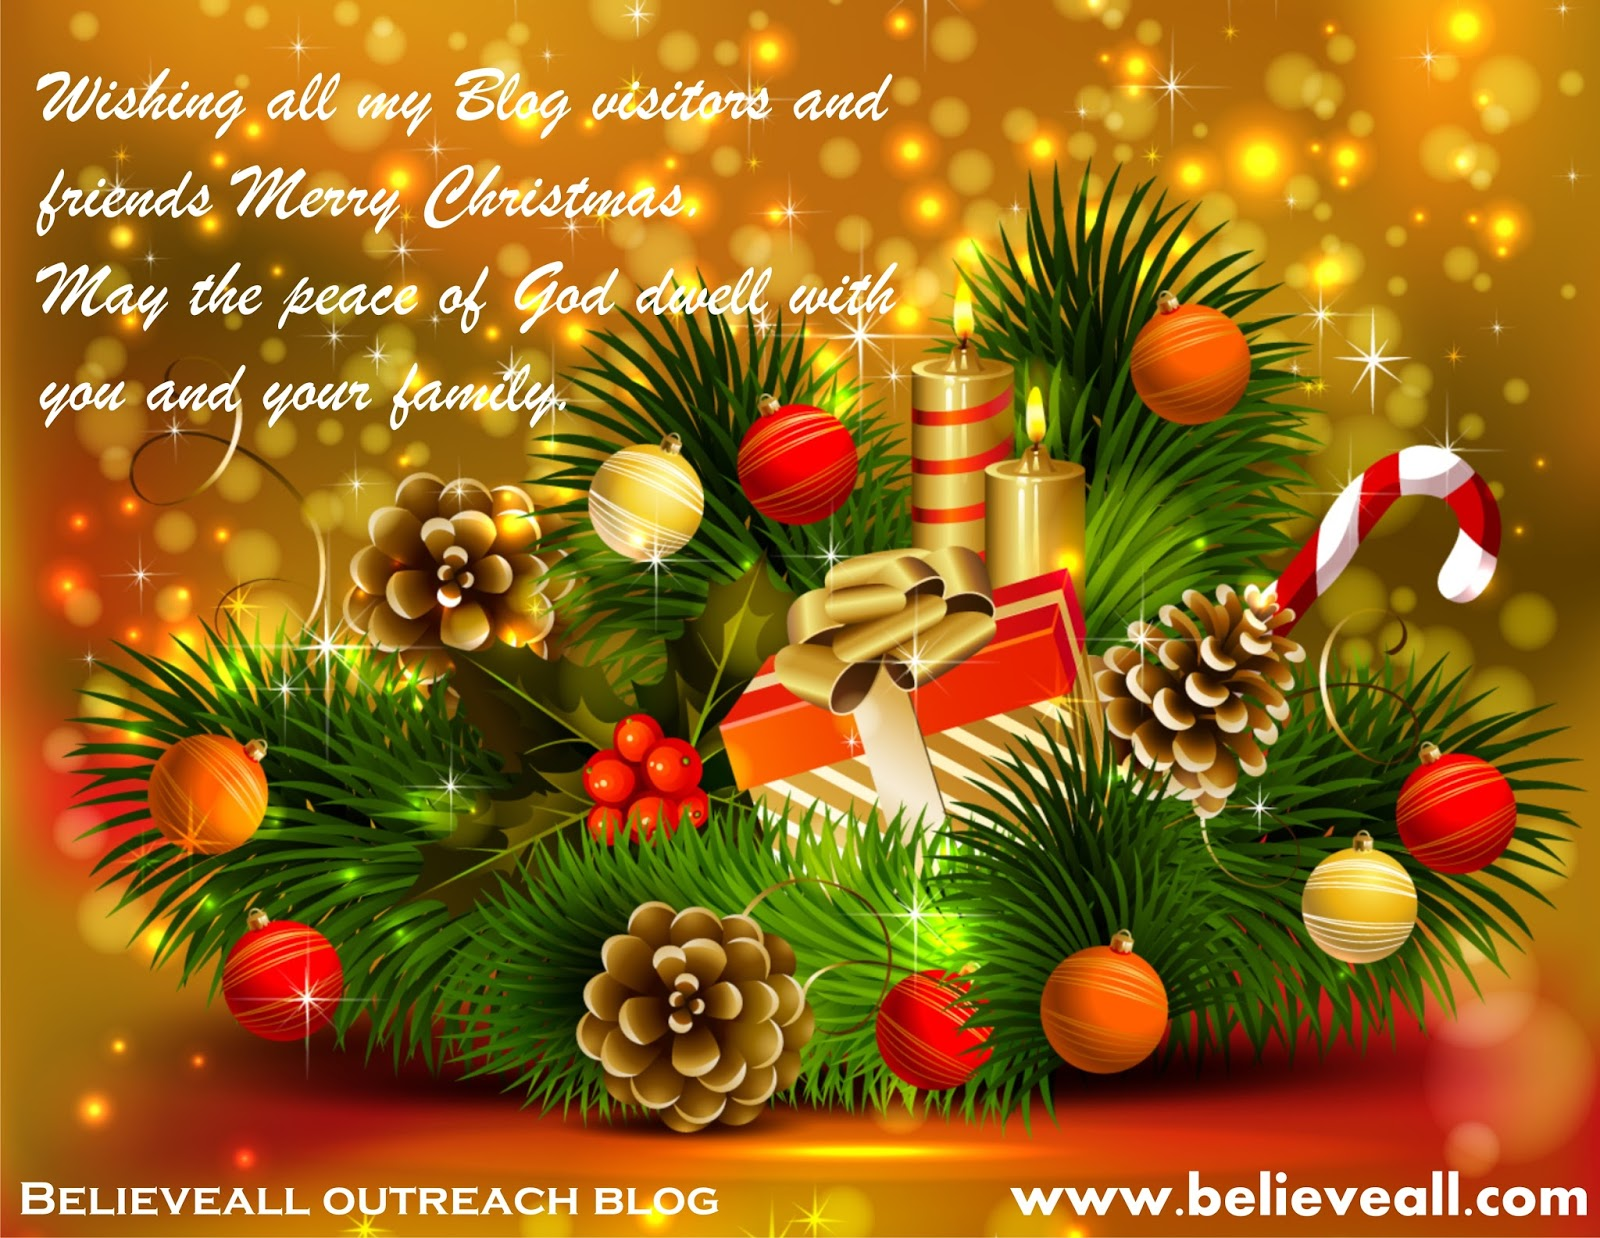 Seasons greetings to all my blog visitors you are special seasons greetings to all my blog visitors you are special kristyandbryce Image collections